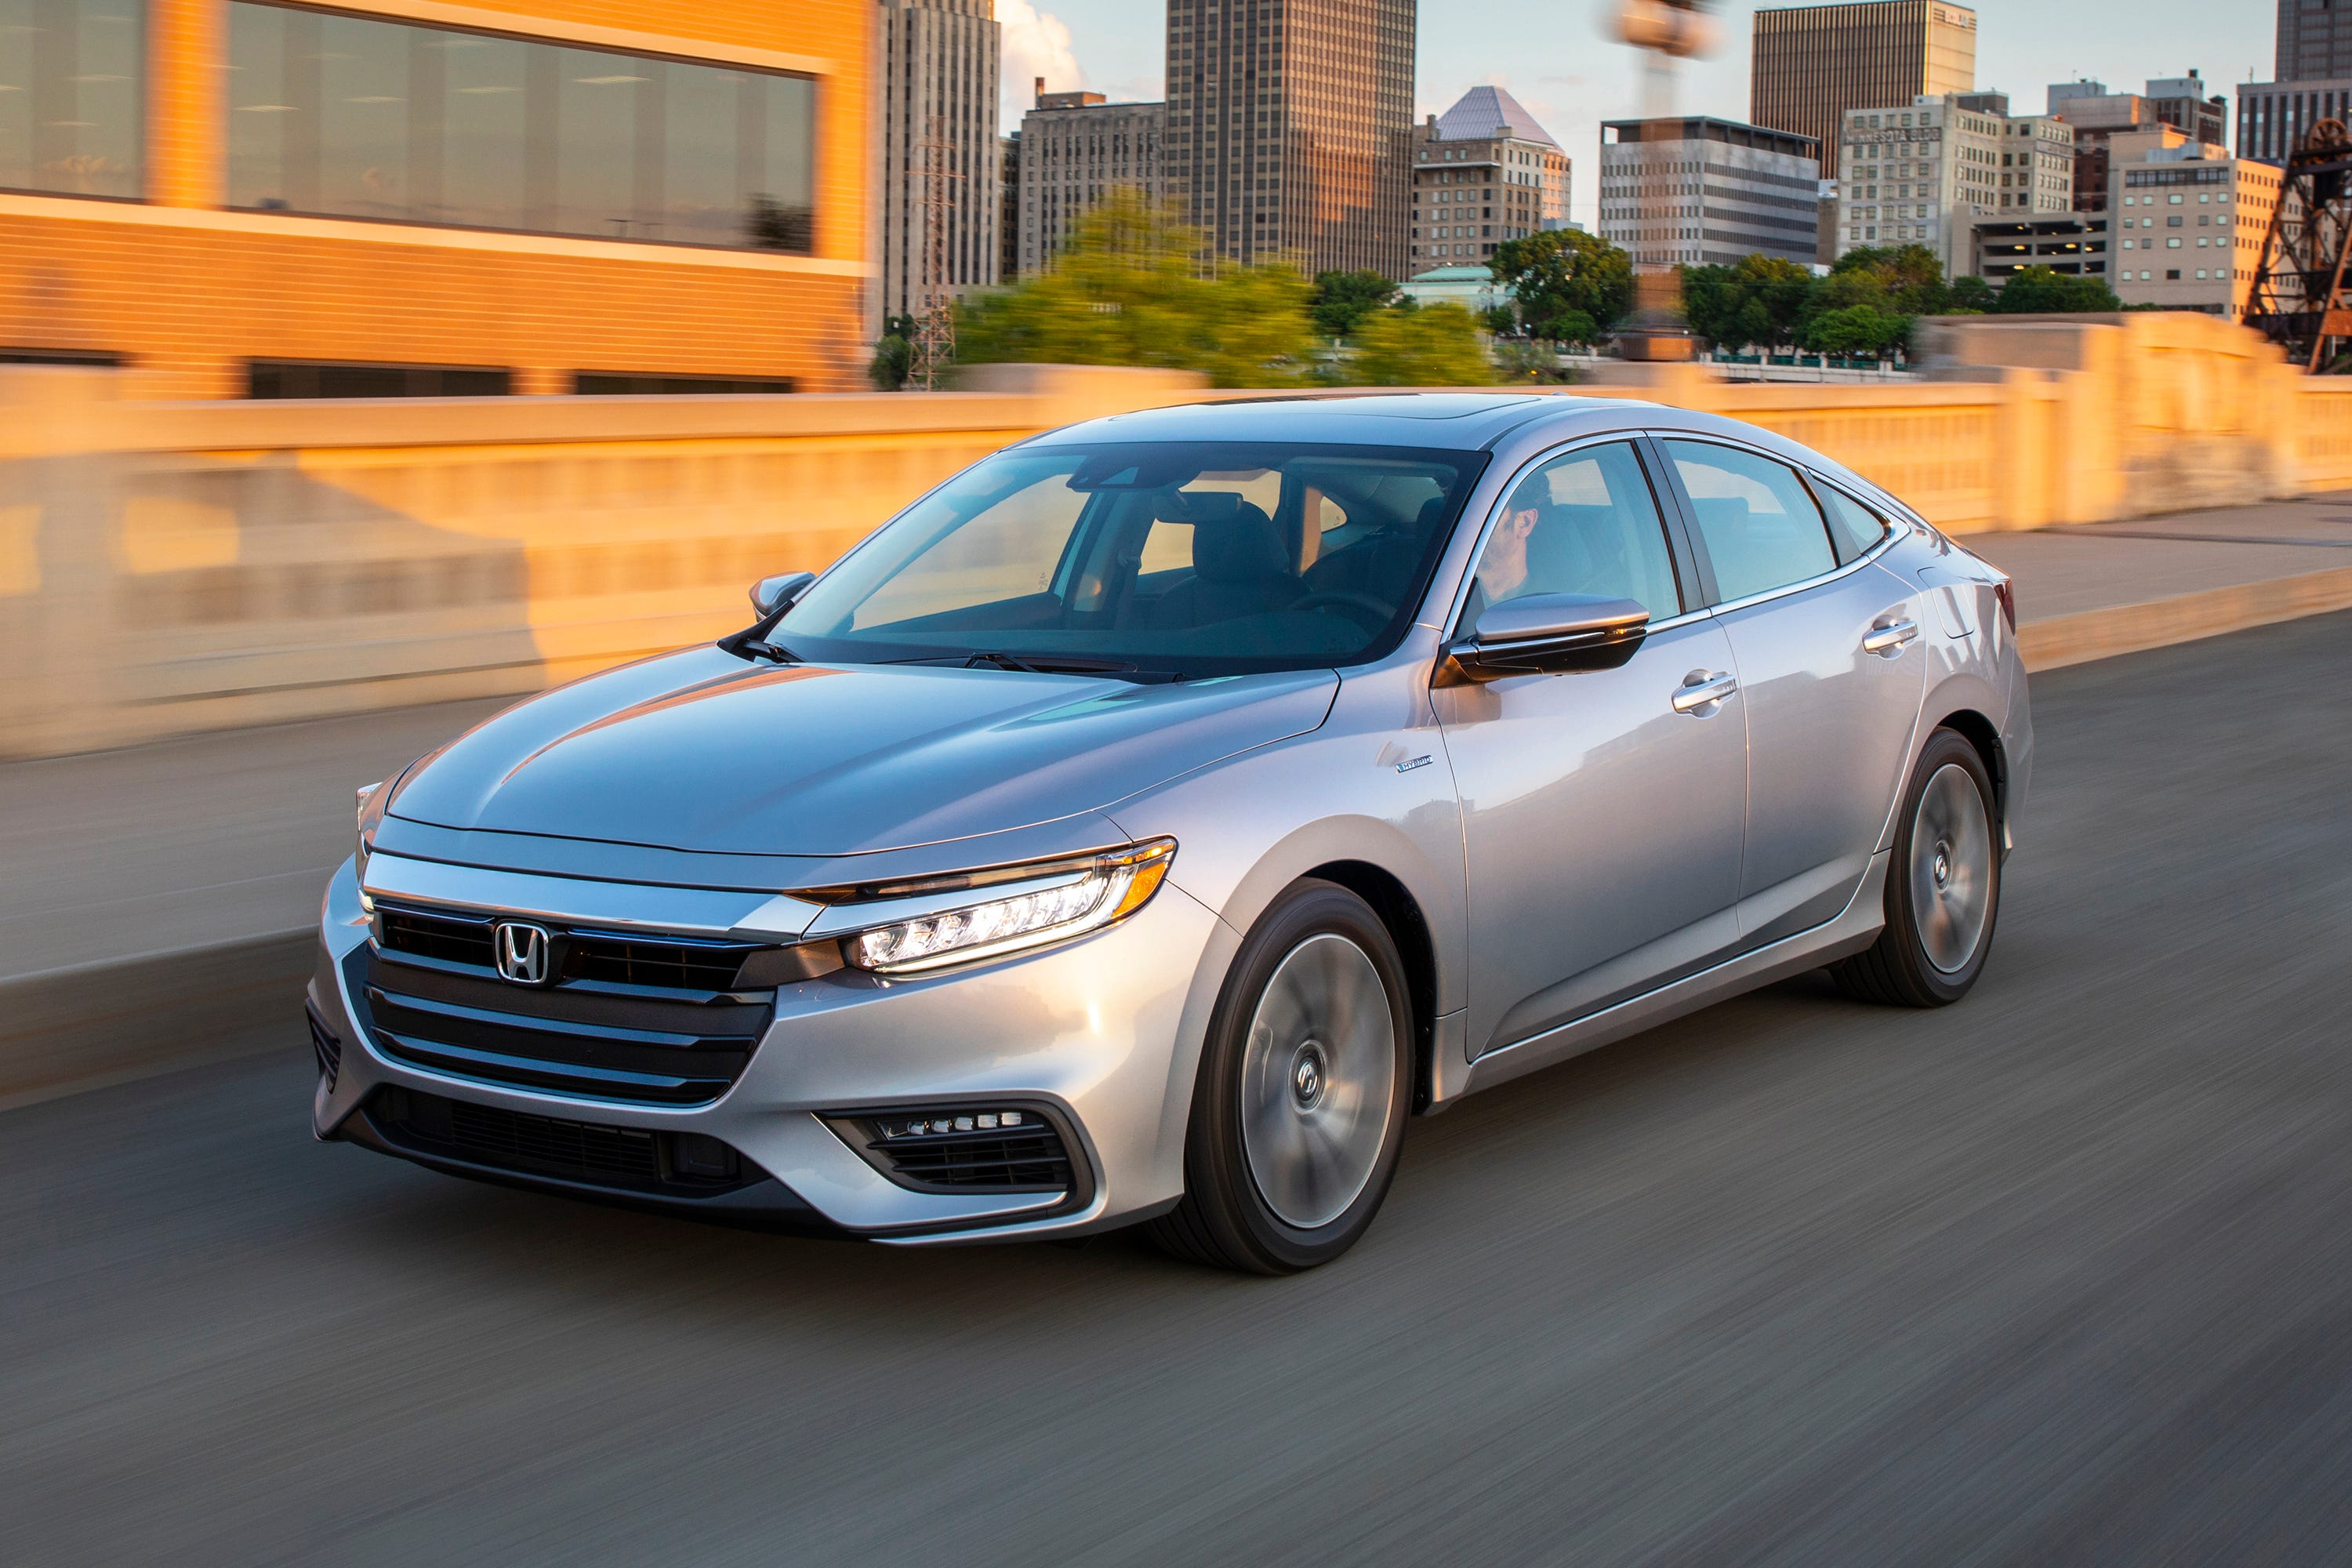 Los Angeles Honda S Insight The Third Generation Of One Nation Original Hybrid Cars Was Recognized Thursday As Winner 2019 Green